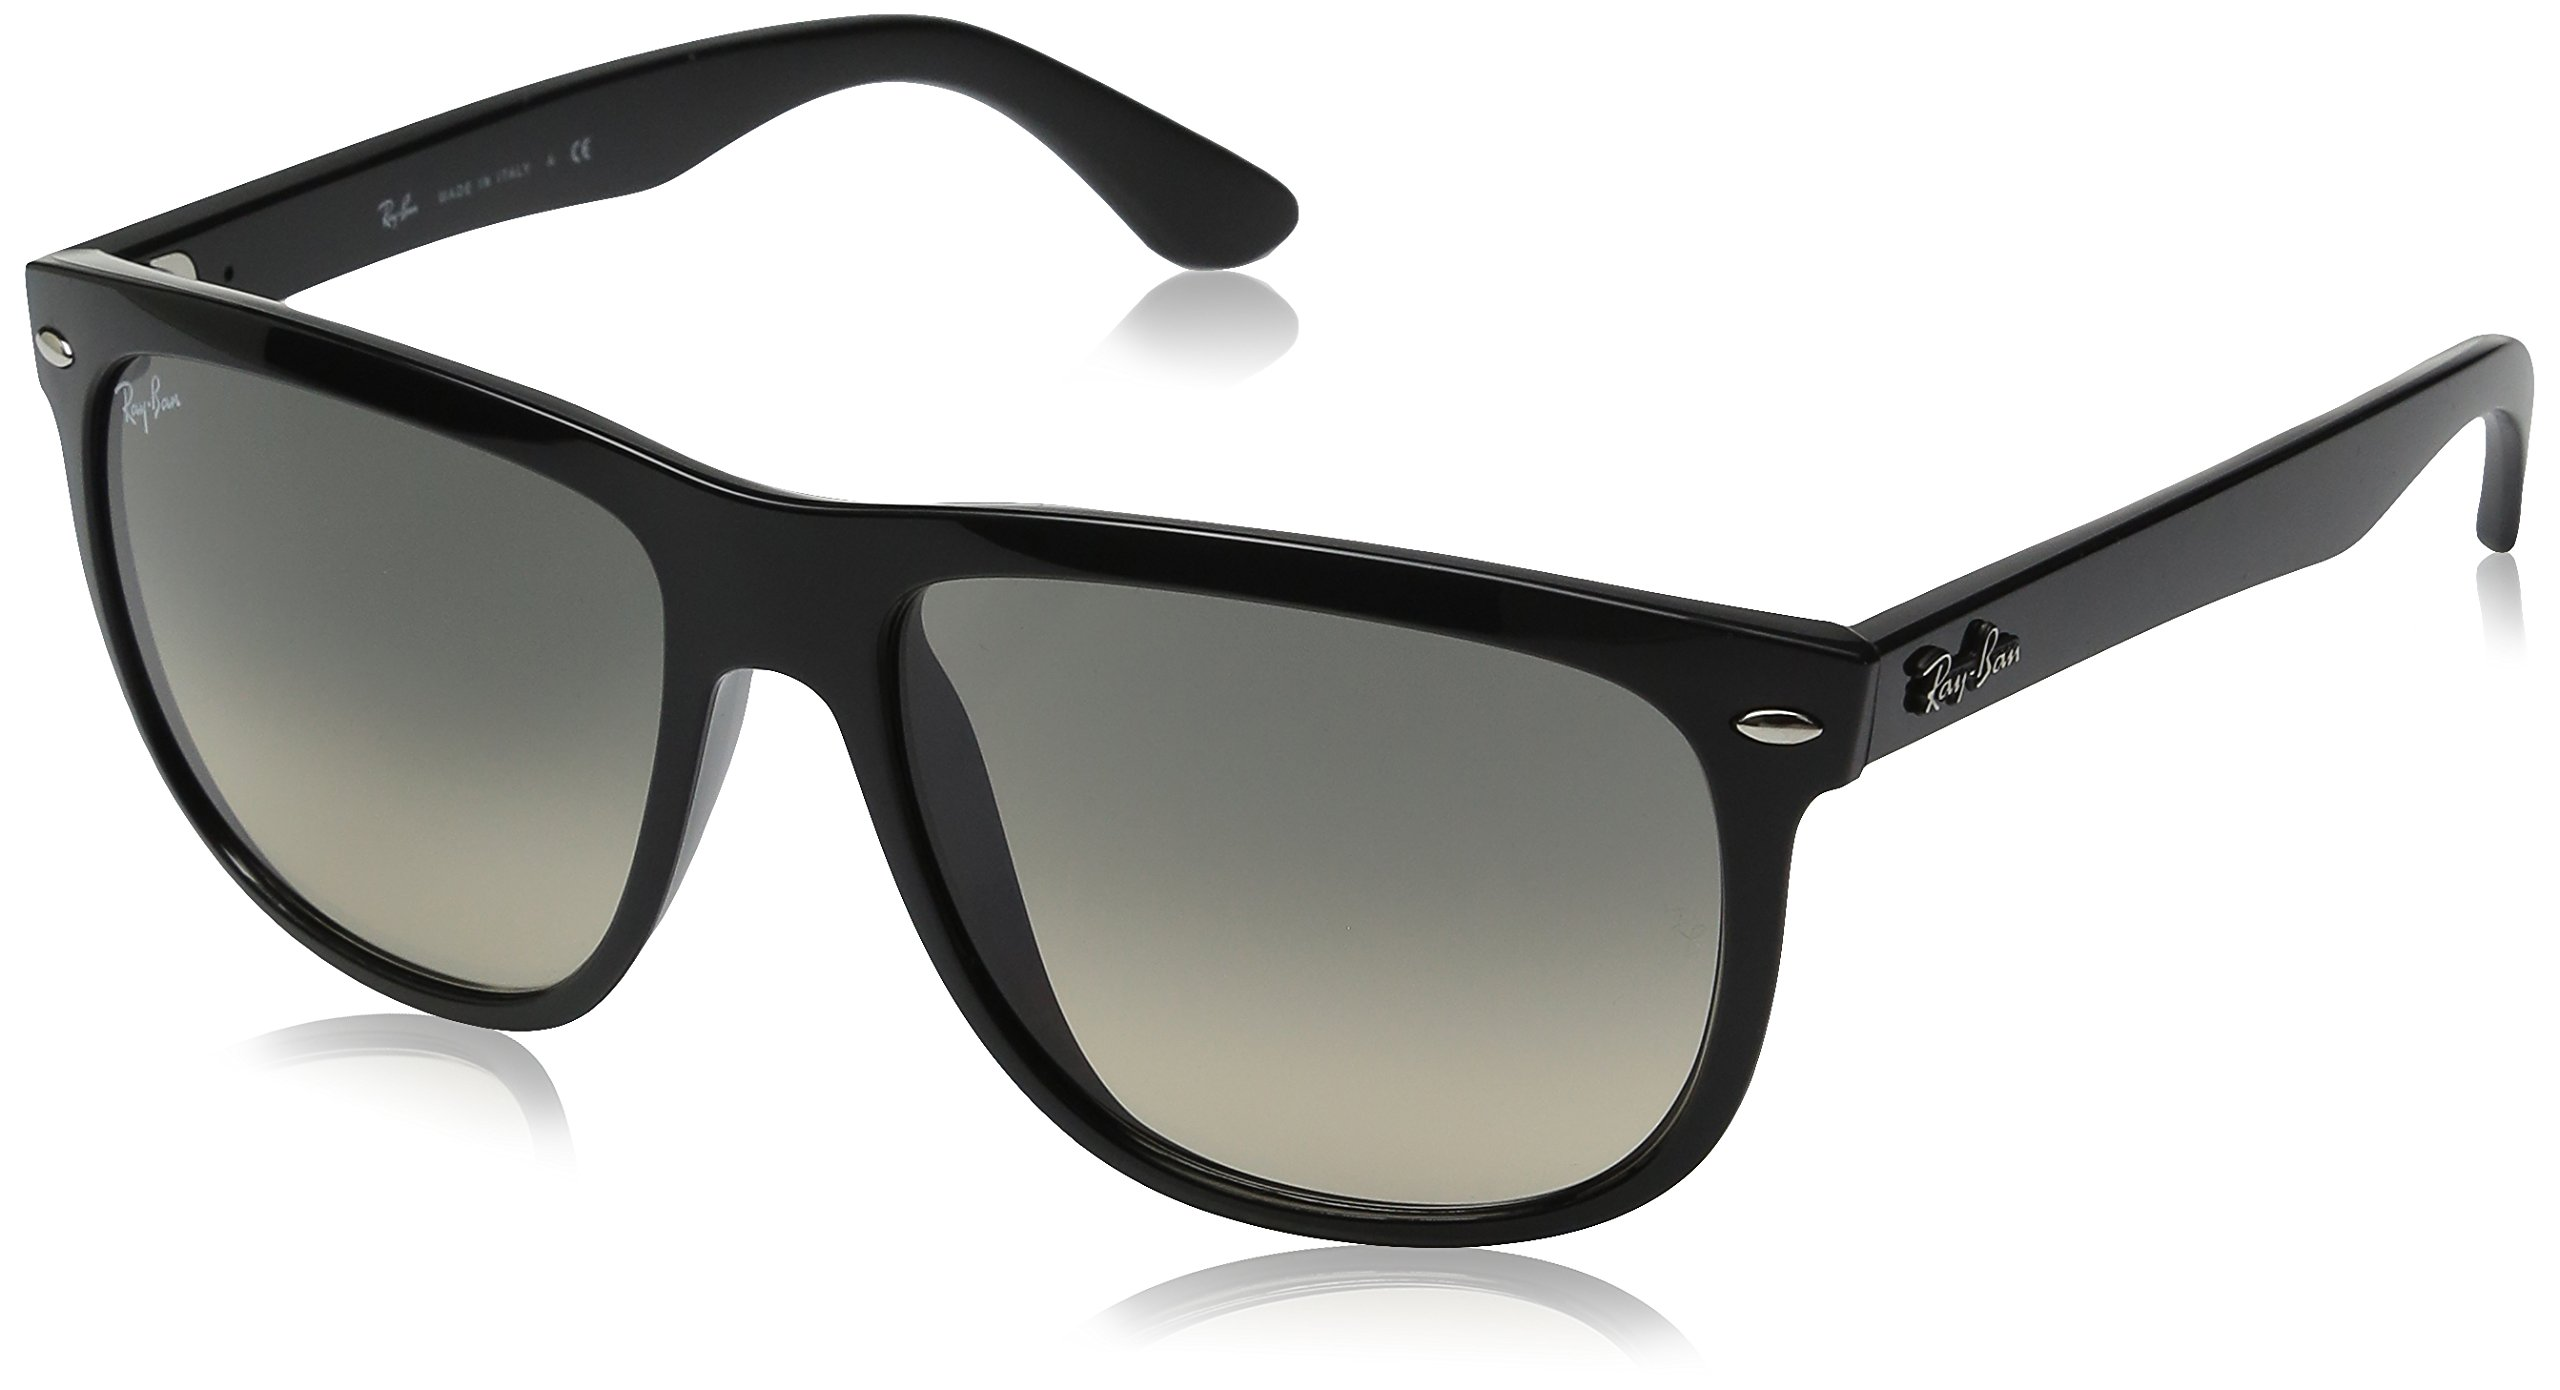 Ray-Ban RB4147 - BLACK Frame CRYSTAL GREY GRADIENT Lenses 56mm Non-Polarized by Ray-Ban